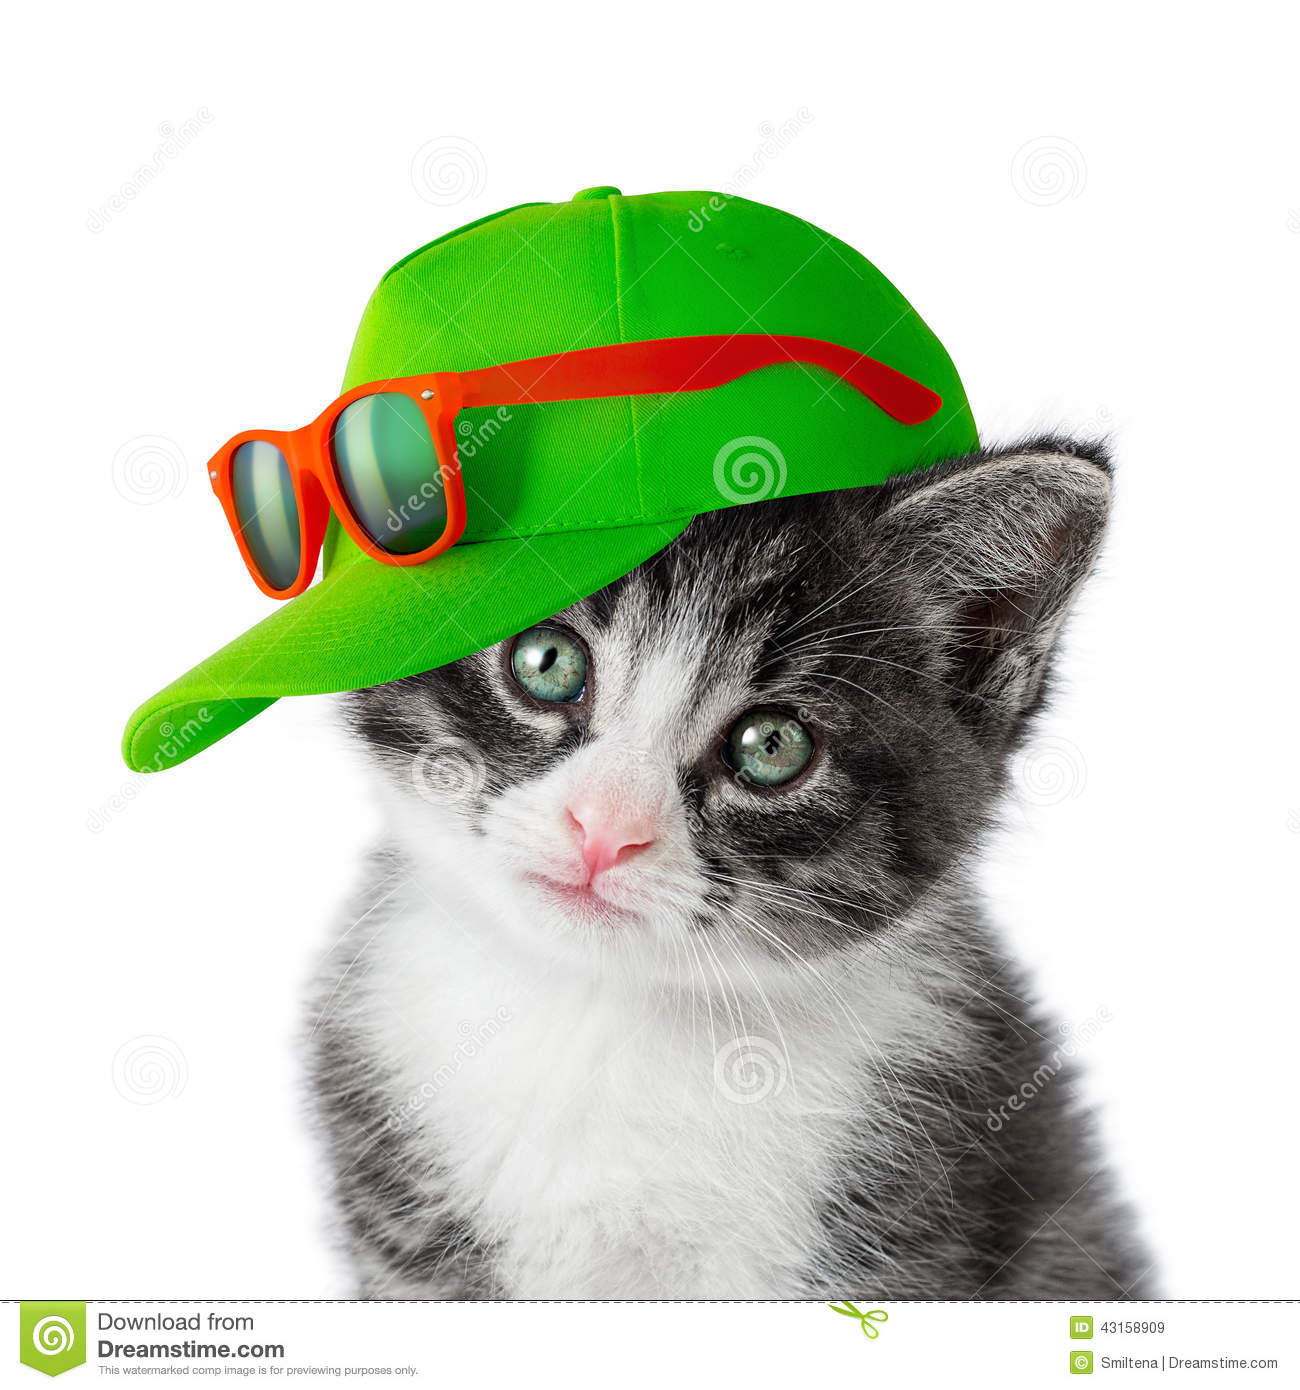 Kitten With Green Cap Stock Photo - Image: 43158909 Gray And White Cat With Green Eyes